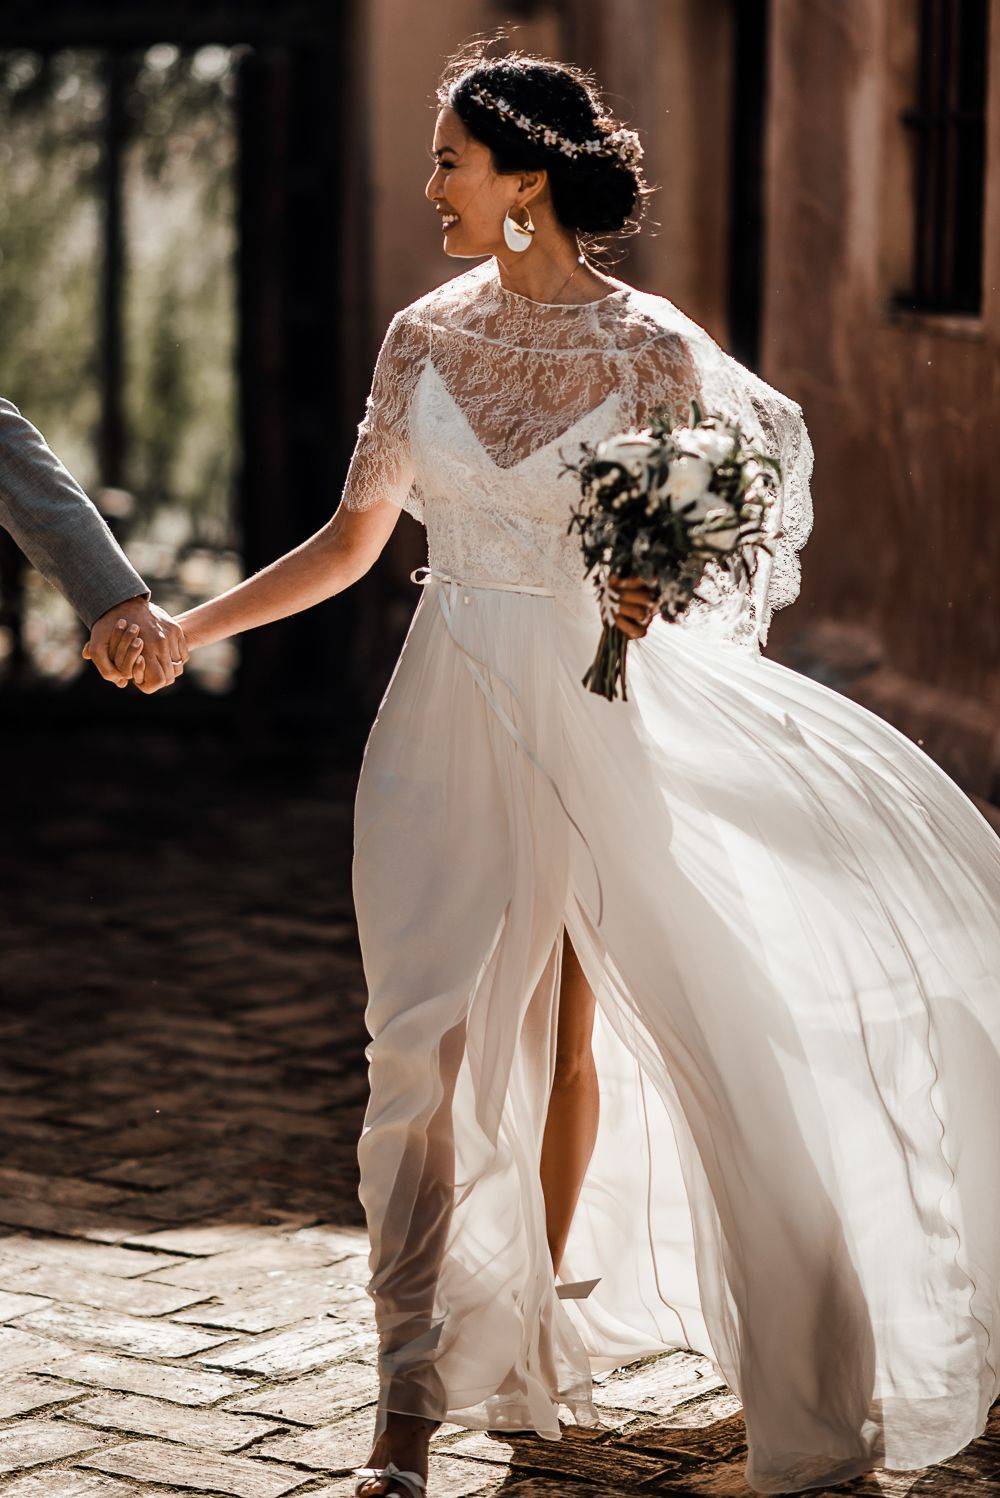 Eine Perfekte Hochzeit K X 545 Wedding In 2019 Pinterest Wedding Wedding Dresses